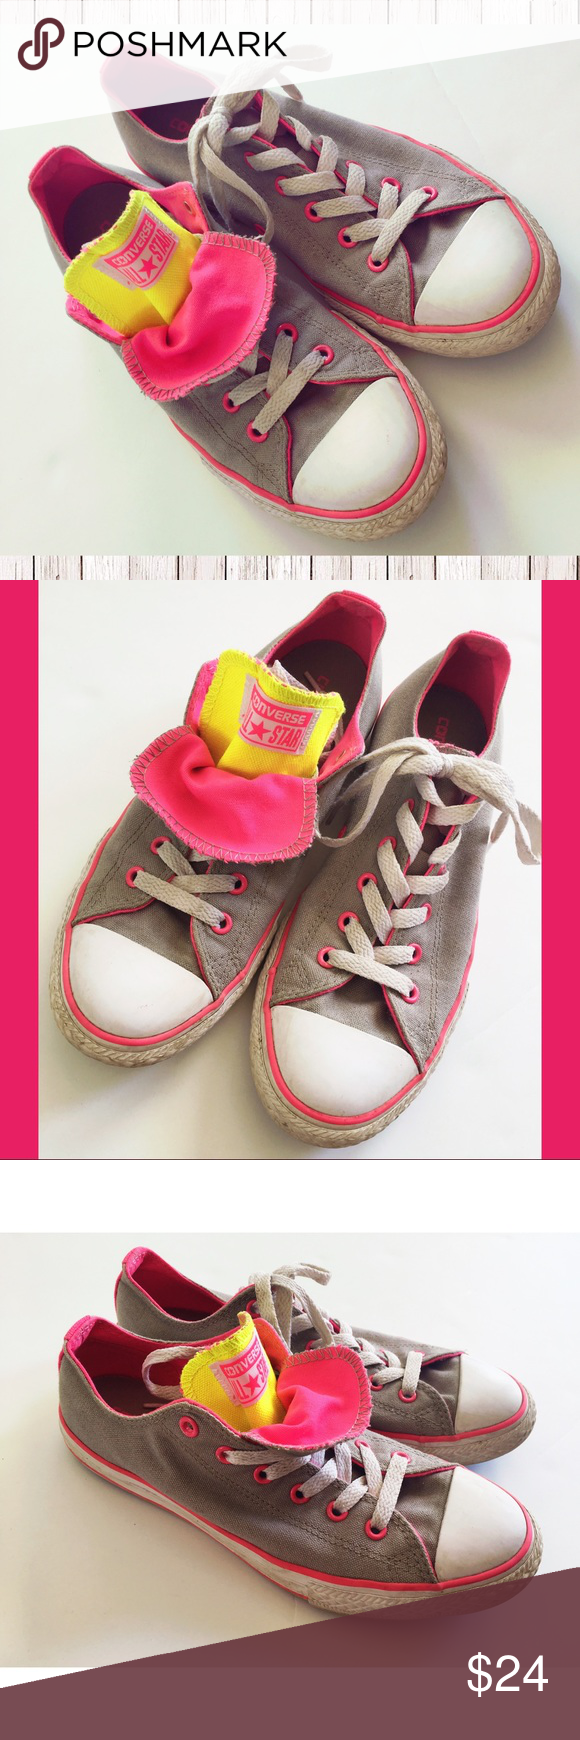 Girls converse size 5 gray neon pink low tops converse low tops girls converse size 5 gray neon pink low tops girls converse low top sneakers size 5 youth this corresponds to a womens 7 on the converse size chart nvjuhfo Gallery